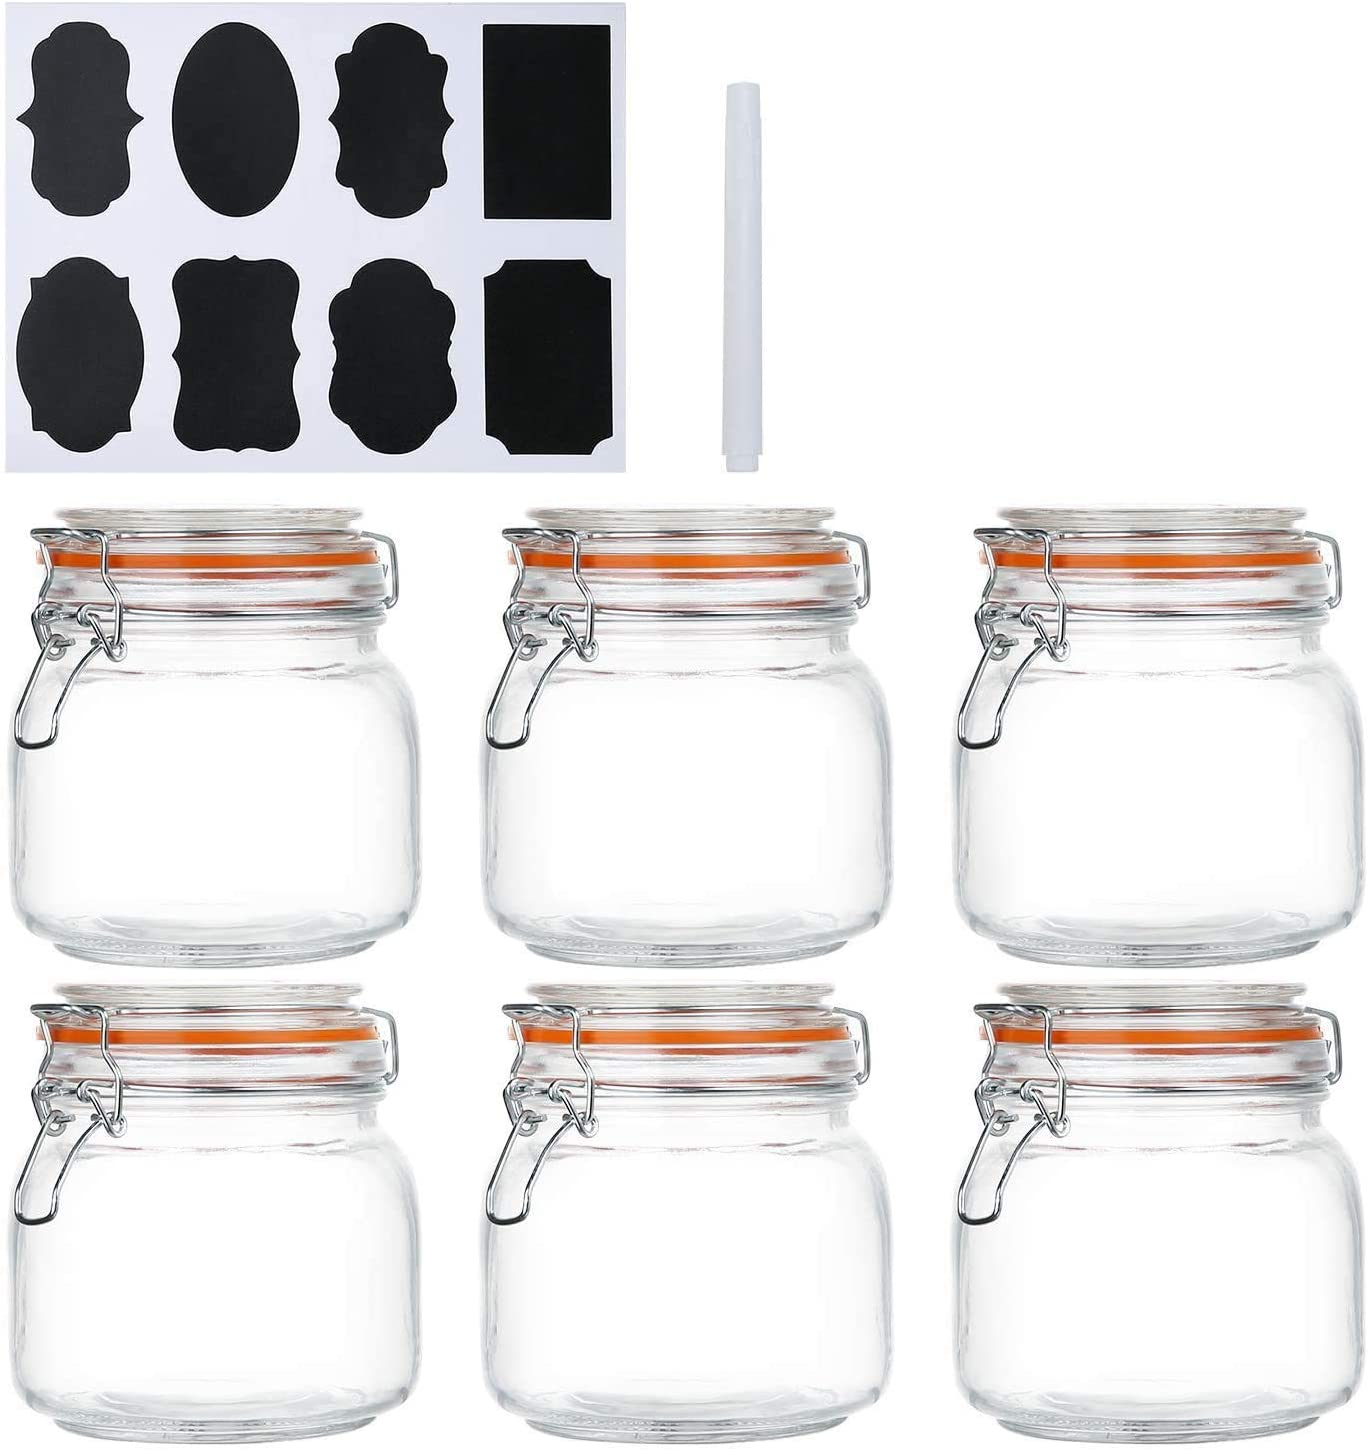 Encheng 25 oz Glass Jars With Proof And Be super welcome Airtight Rubbe Leak Max 45% OFF Lids